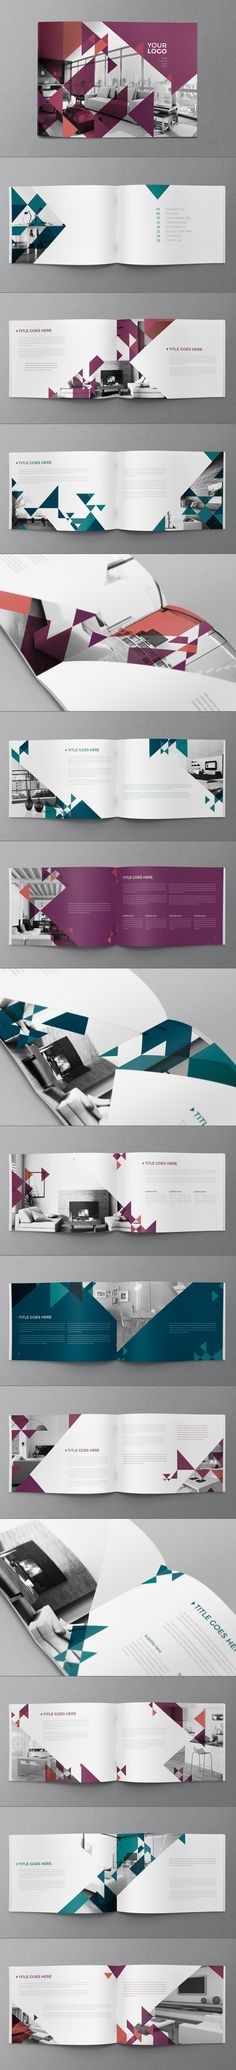 Modern Red Blue Brochure by Abra Design, via Behance